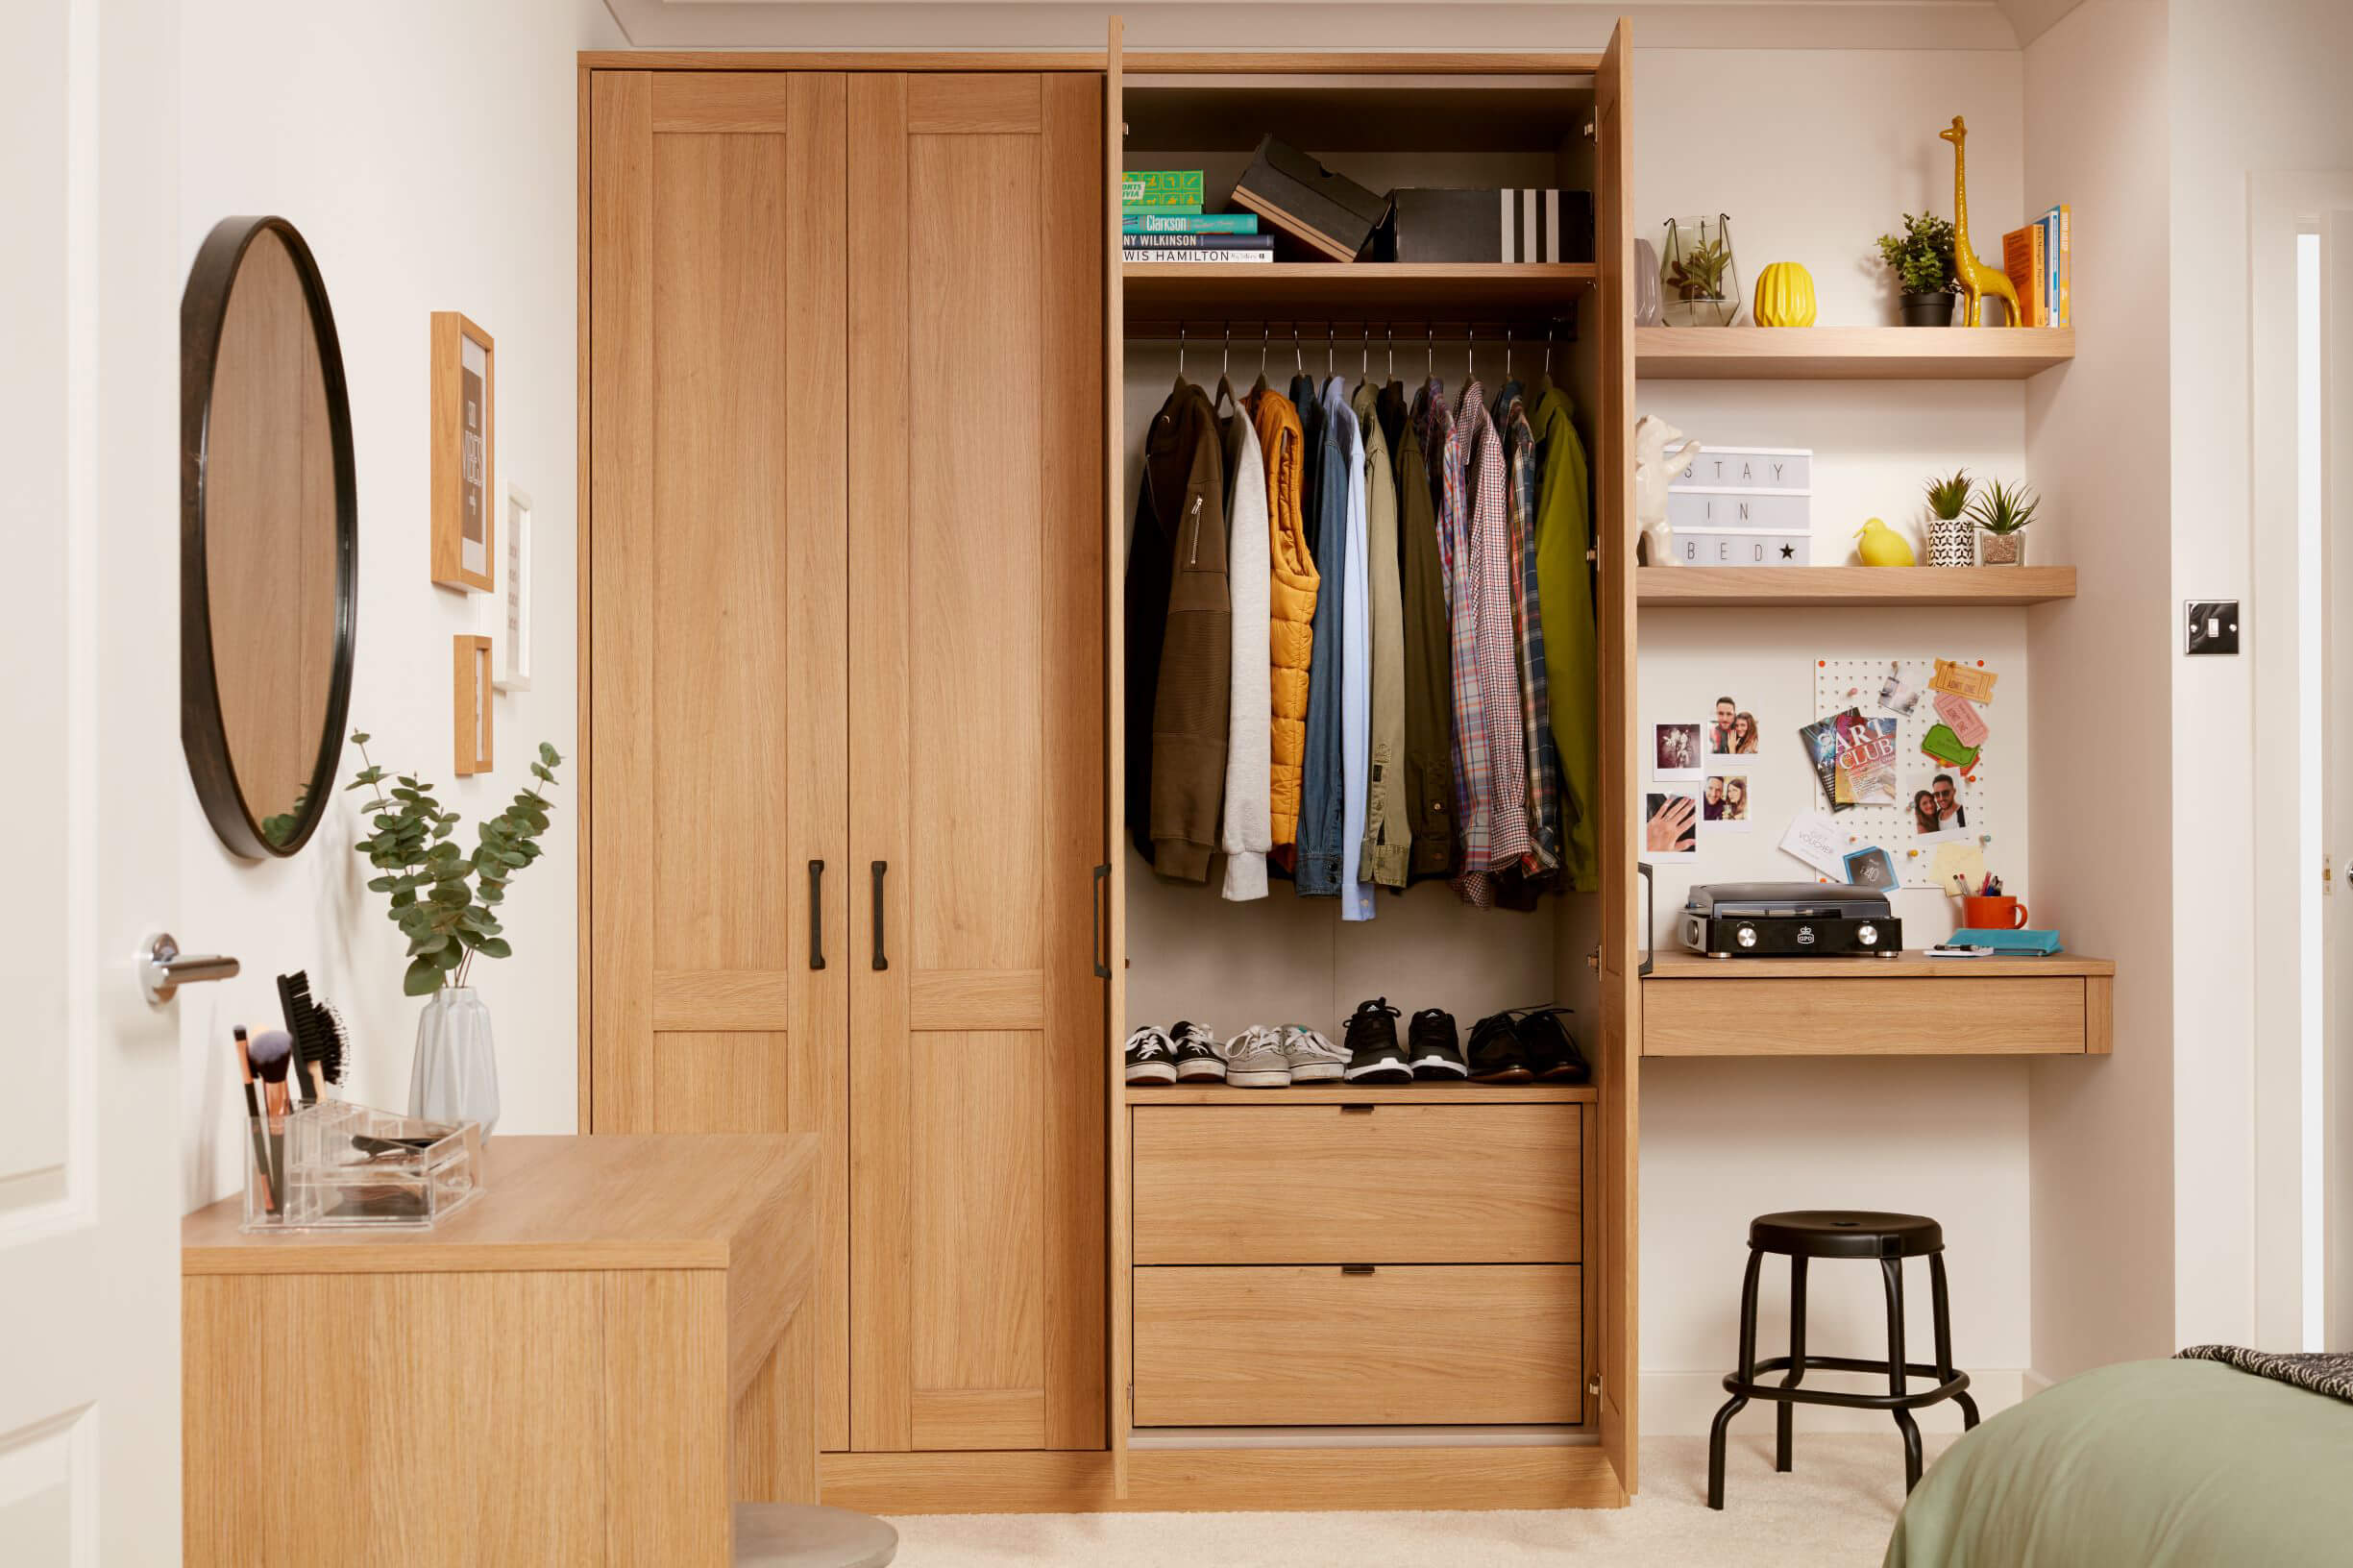 kindred-wardrobe-range-c-and-c-kitchens-origin-Gallery2